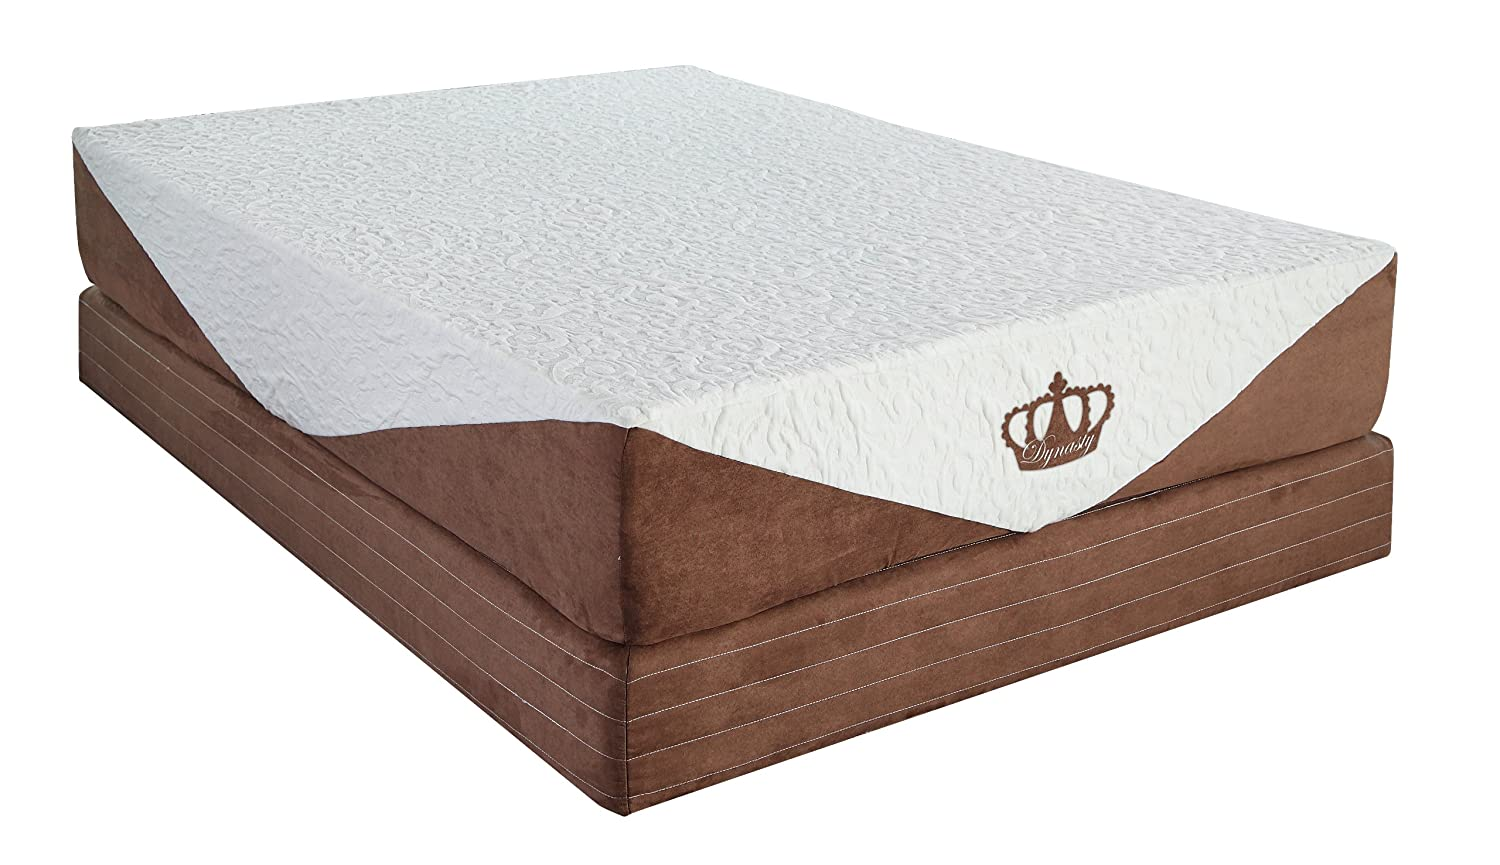 force inch cool of mattress updated to amazon guide plete foam g adjustable memory unique the bed mattresses zero breeze state king gravity gel dynastymattress split lovely